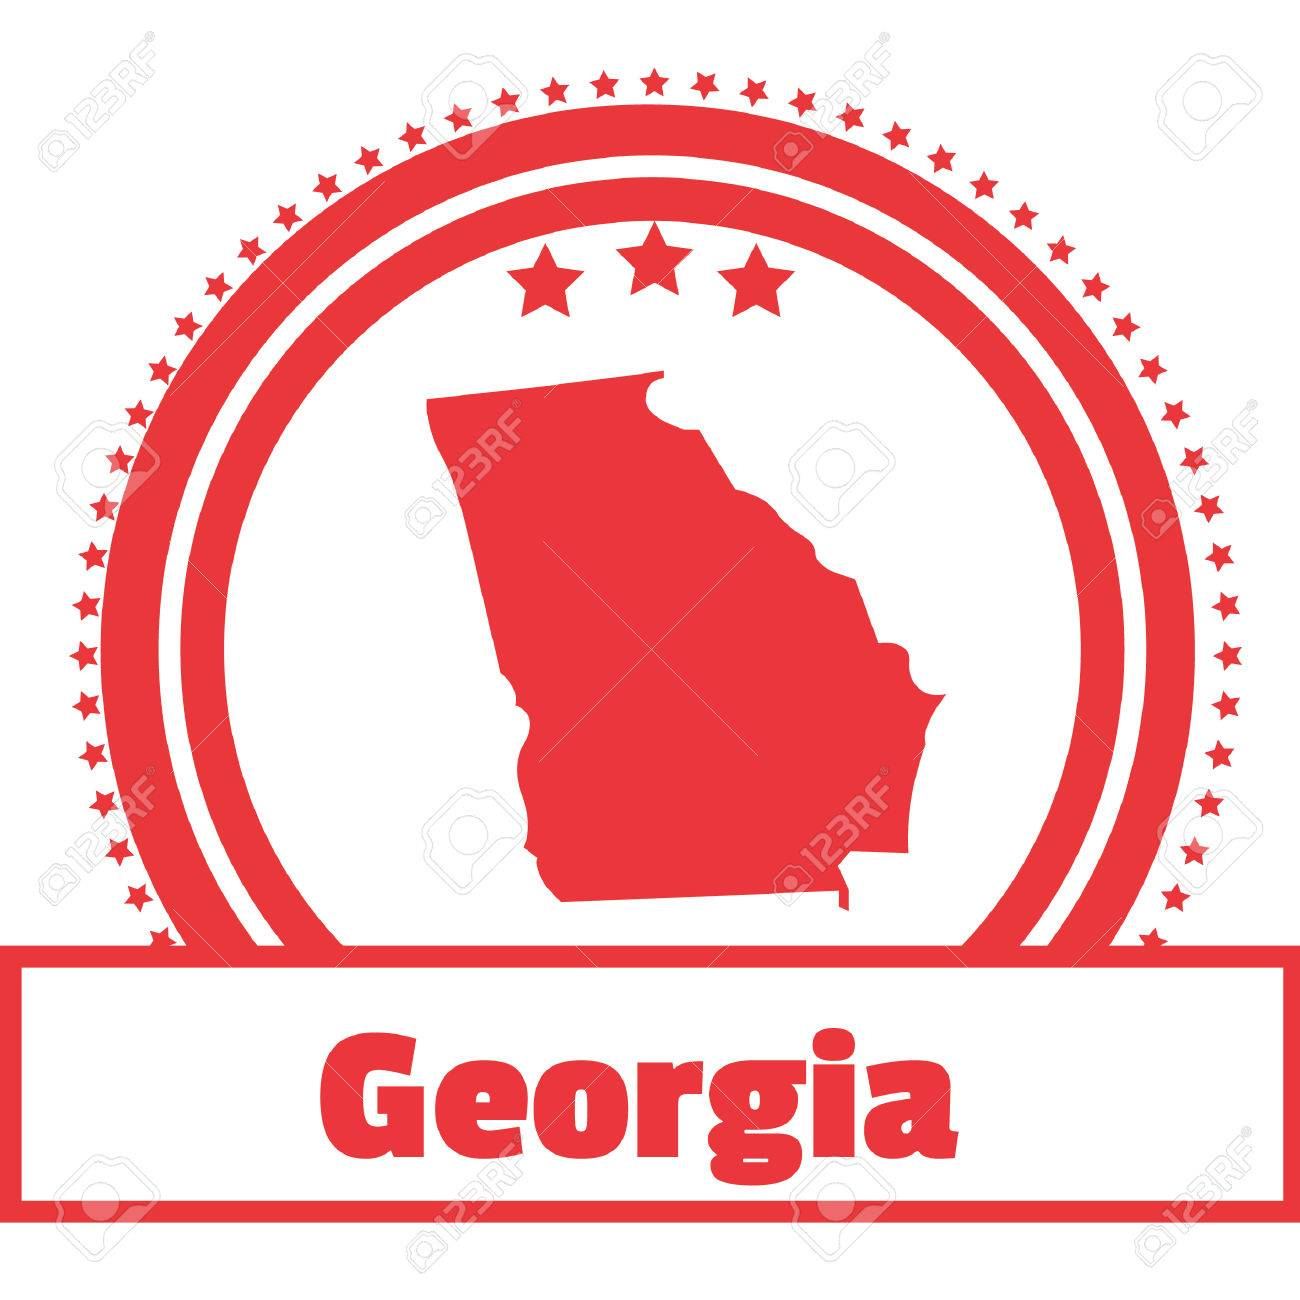 Georgia State Map Label Royalty Free Cliparts Vectors And Stock - Georgia map label